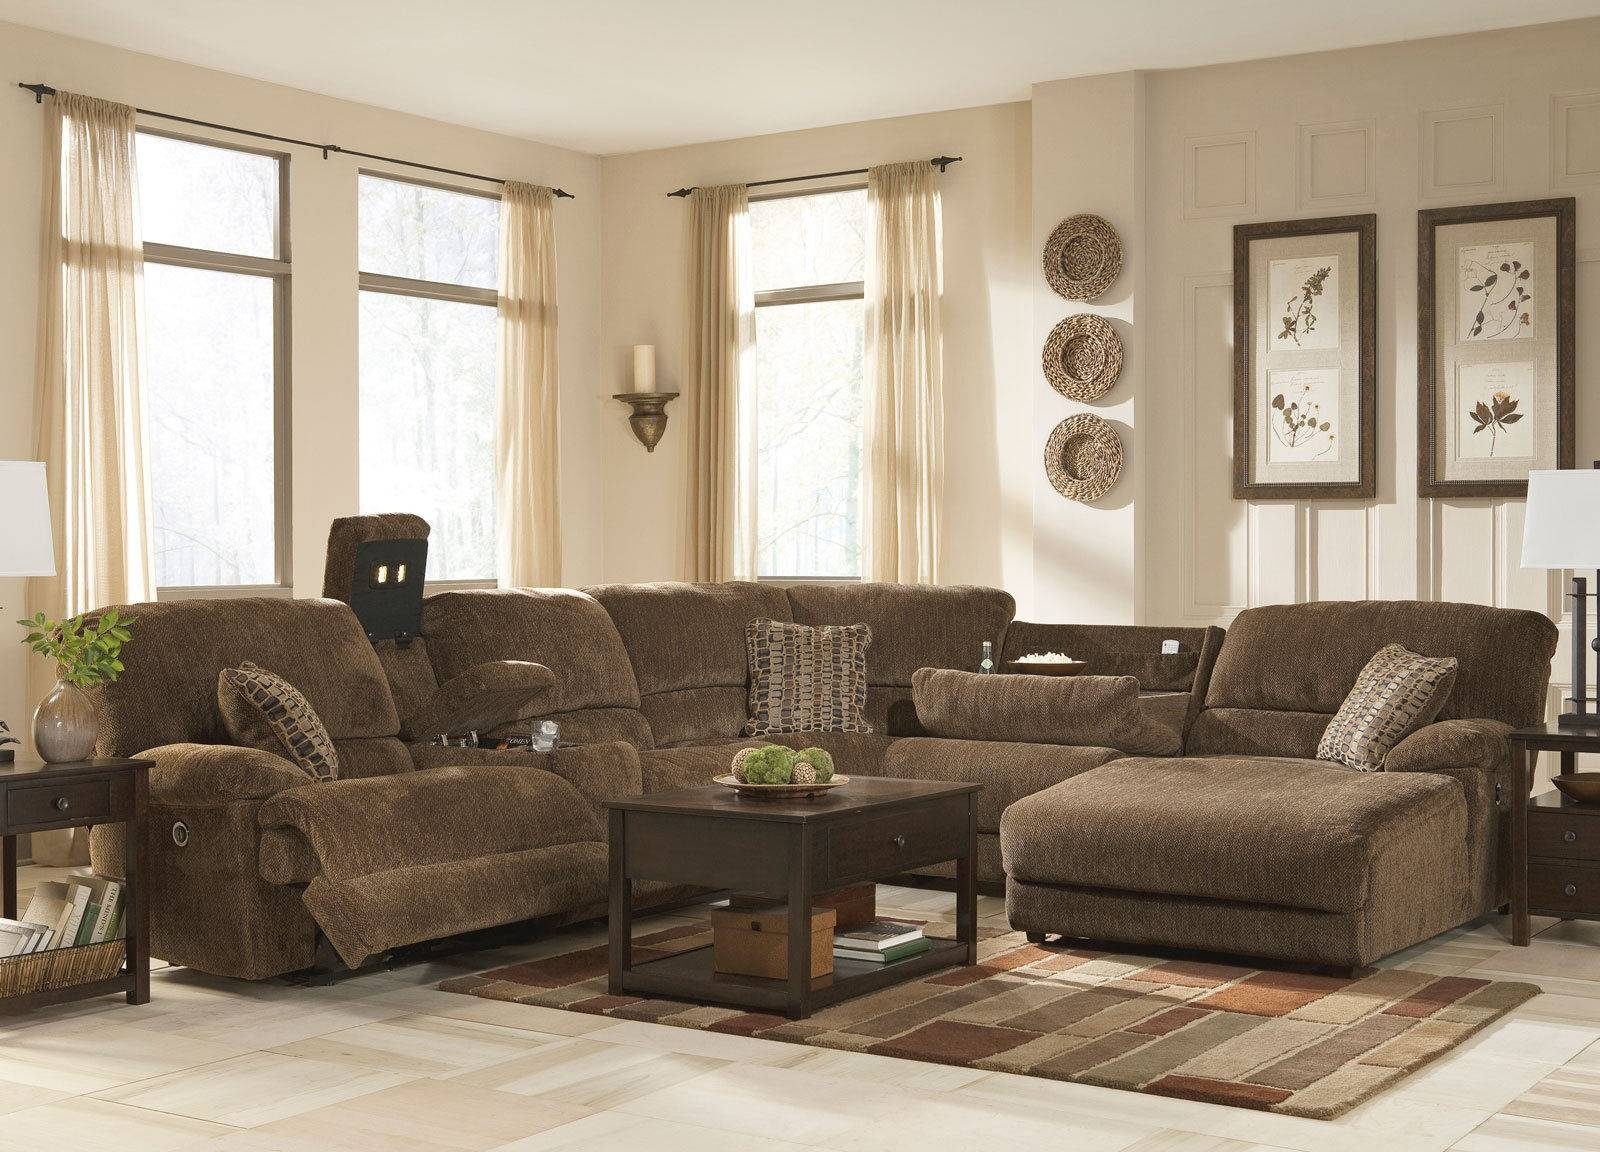 Simple Chenille Sectional Sofa With Chaise 77 For Your with regard to Chenille Sectional Sofas With Chaise (Image 14 of 15)